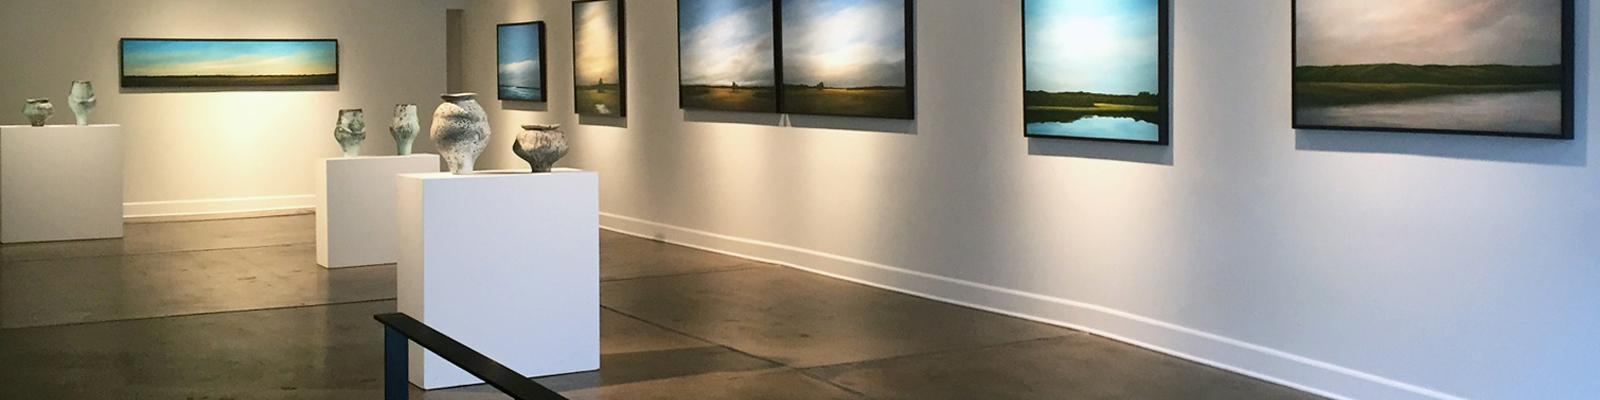 Duane Reed Gallery background